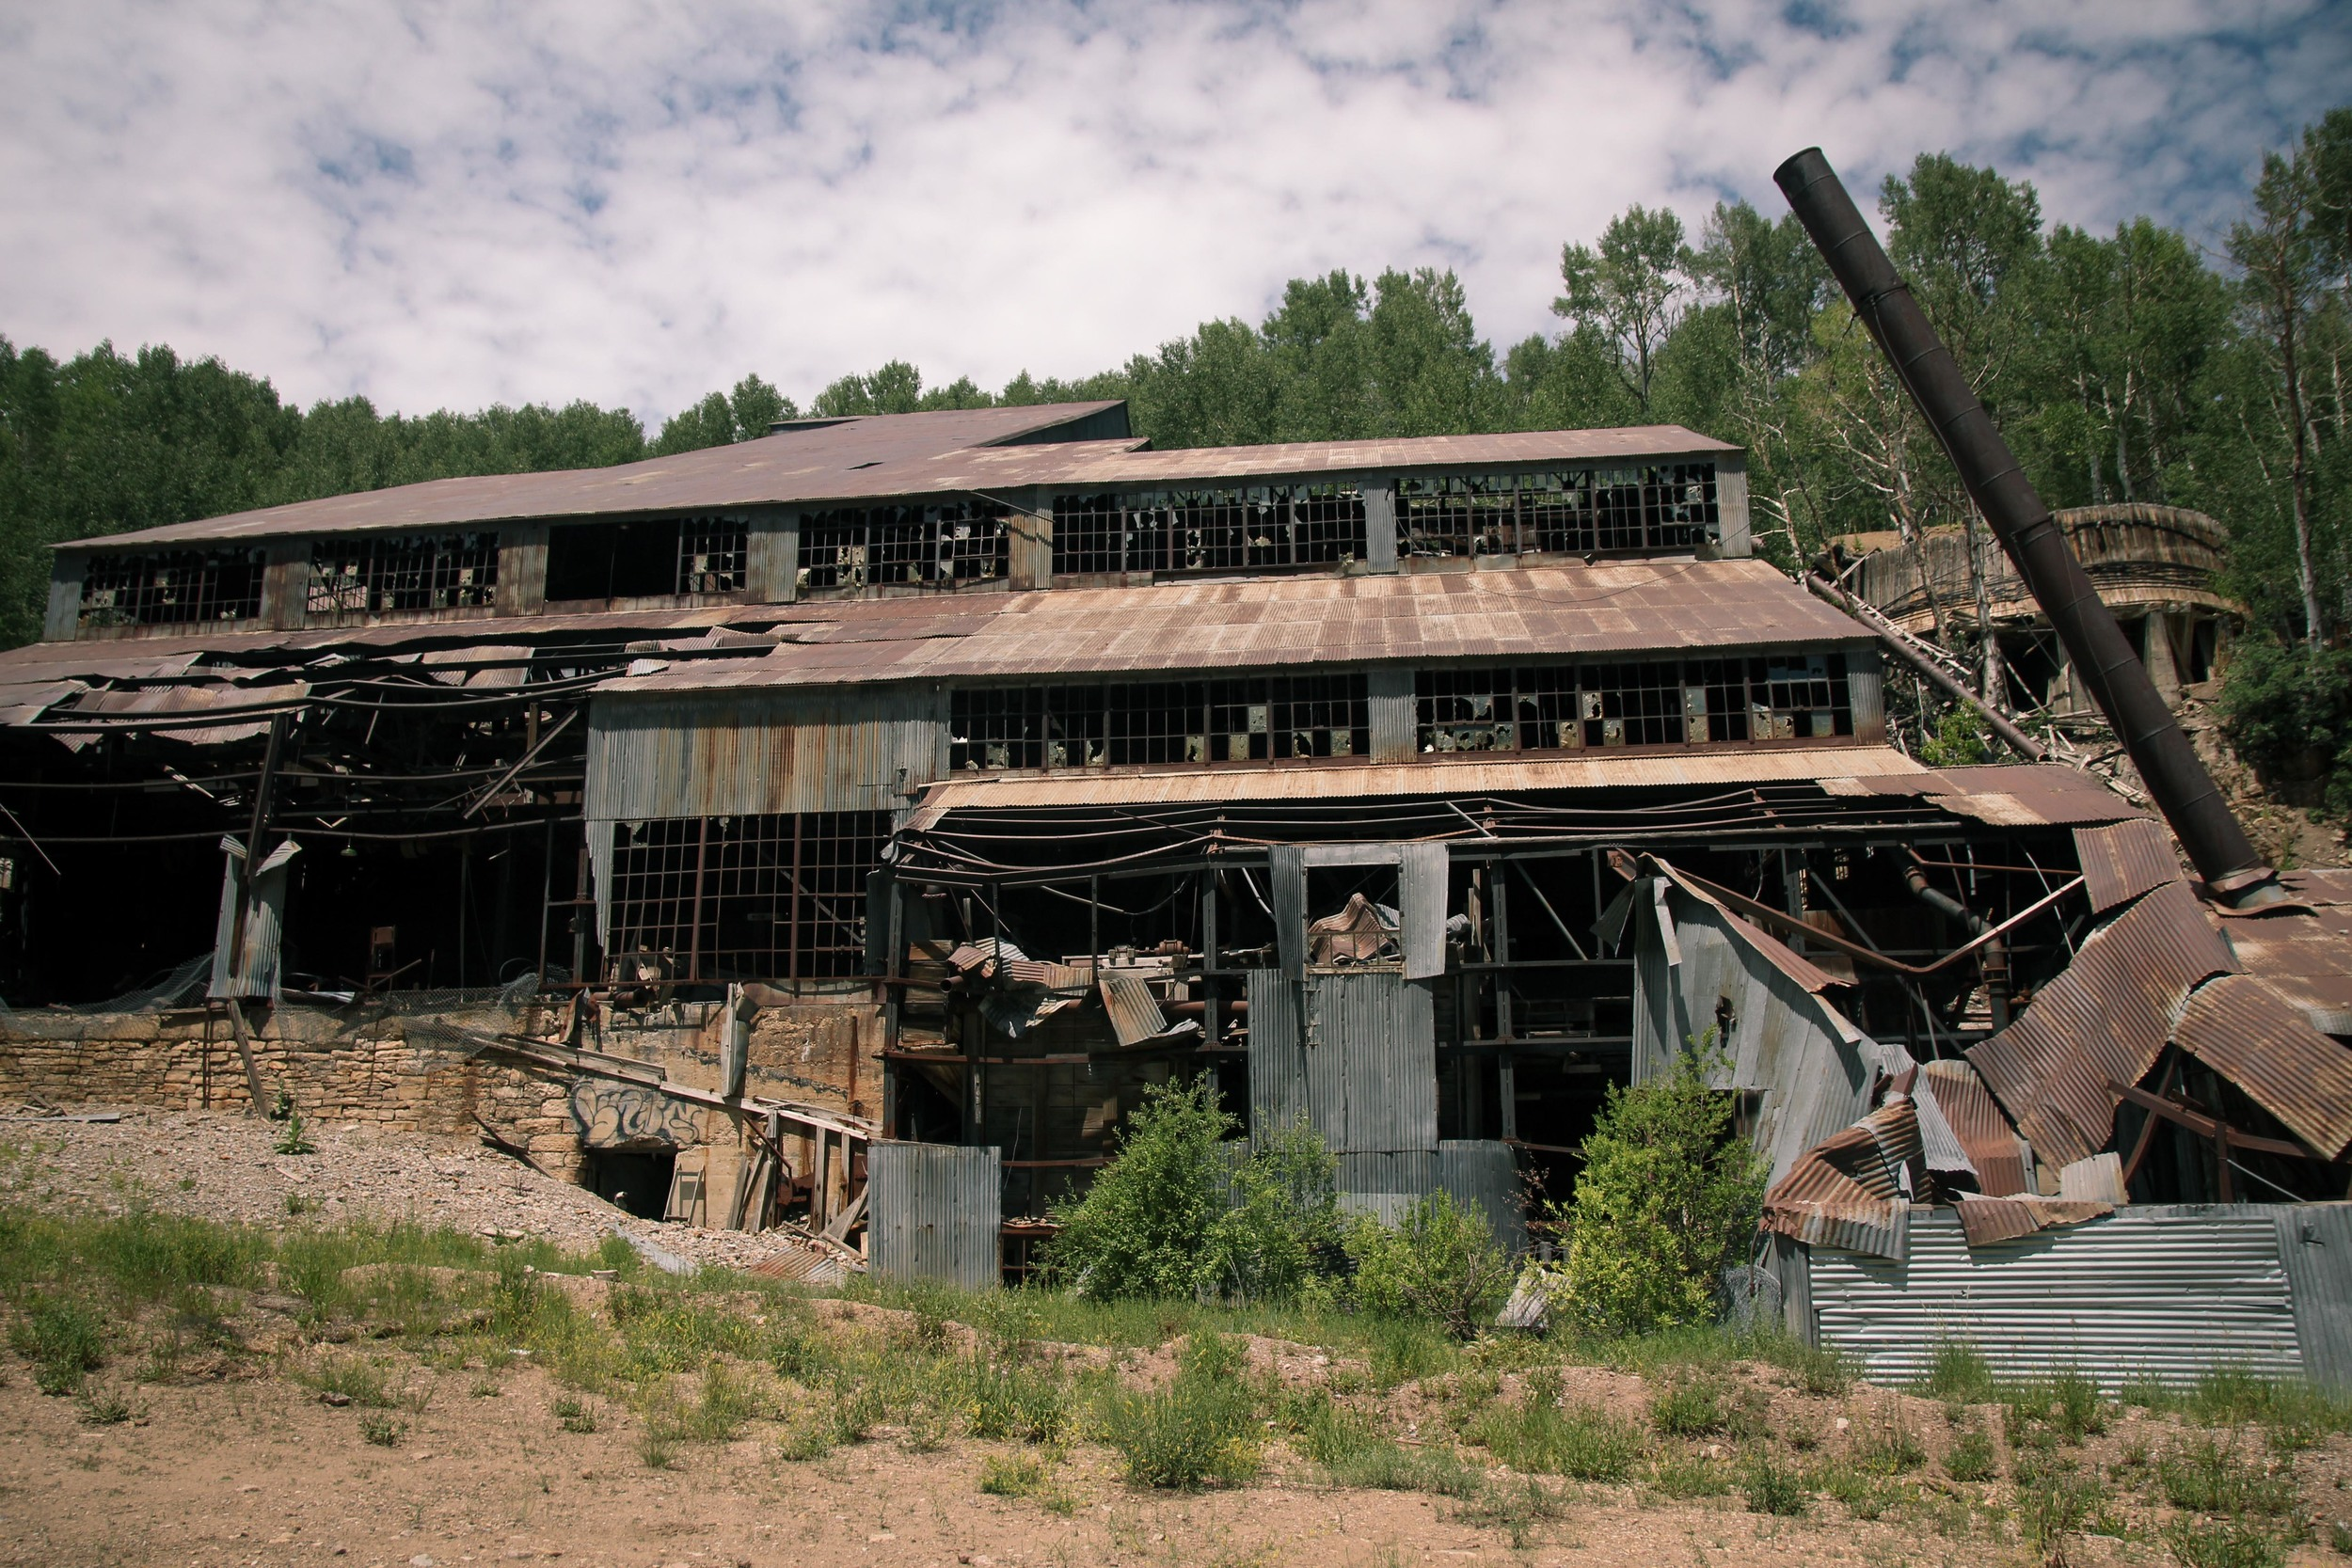 Abandoned silver mine on the mountain